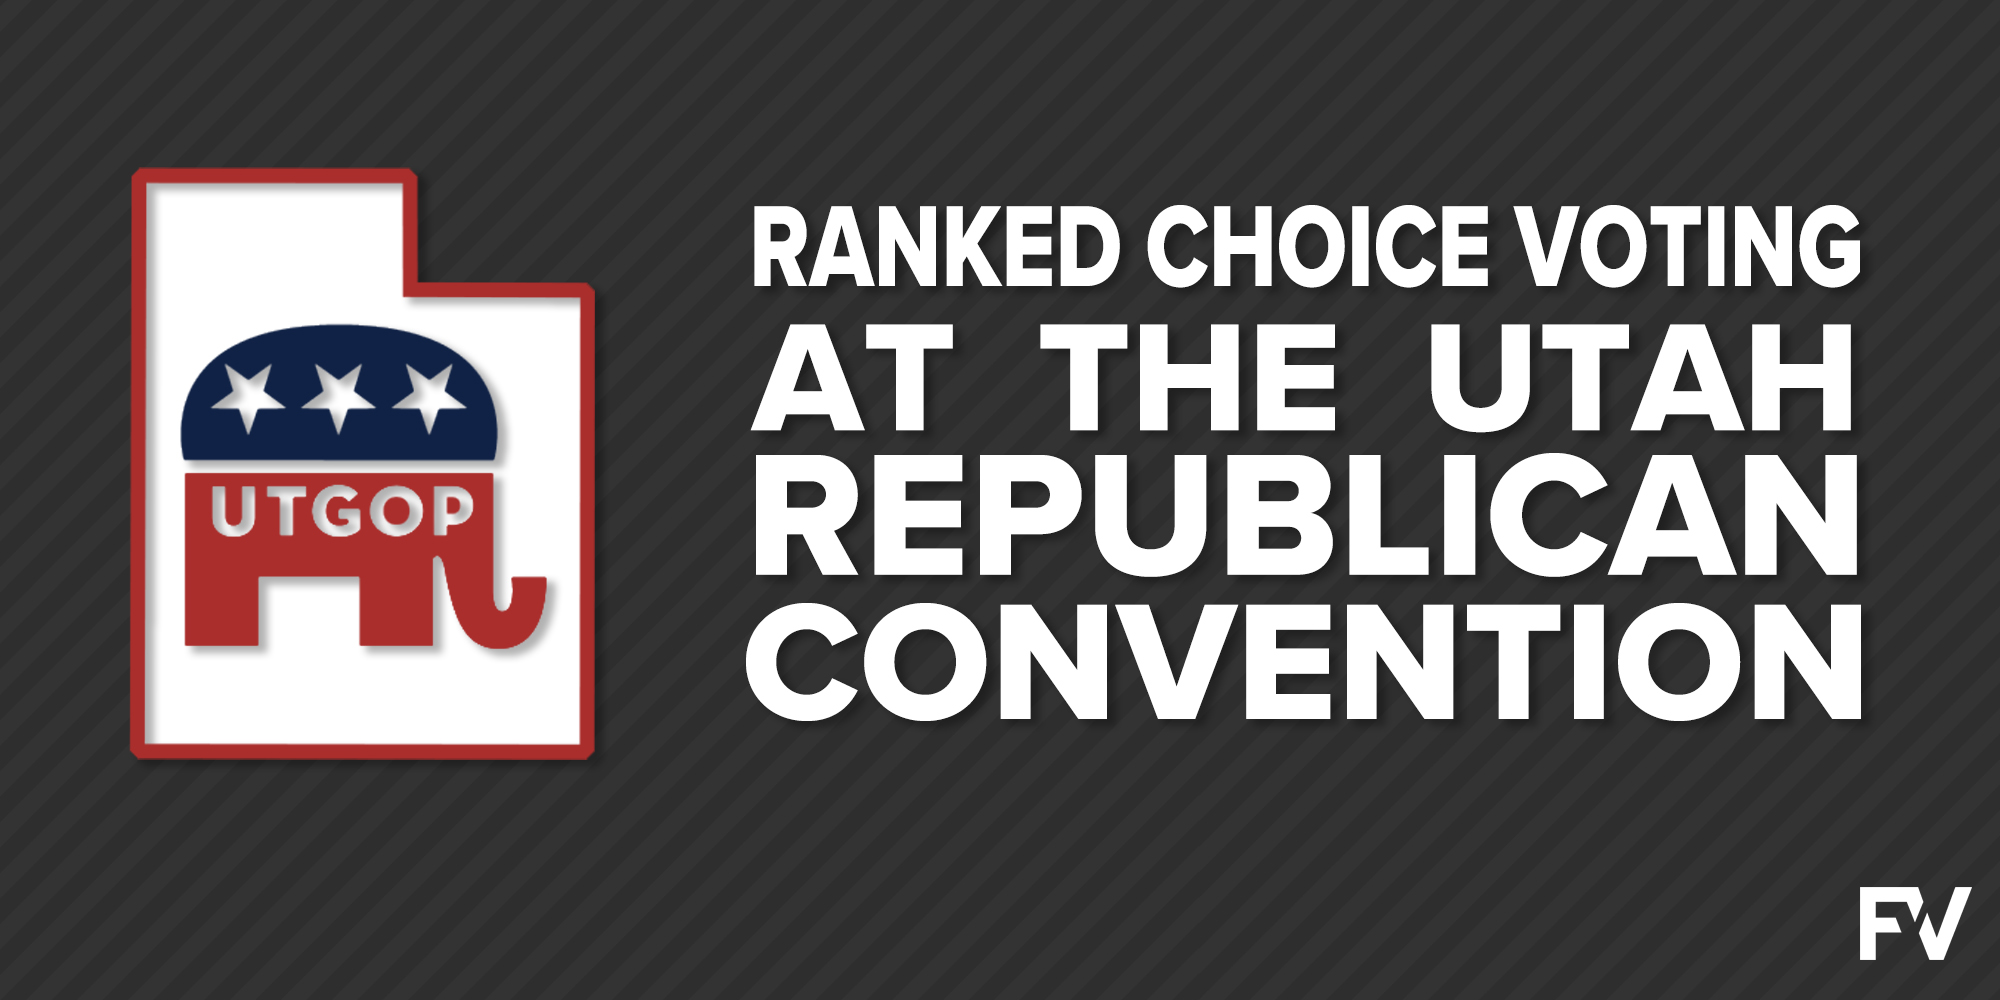 Ranked choice voting impacts eight races at the Utah GOP Convention